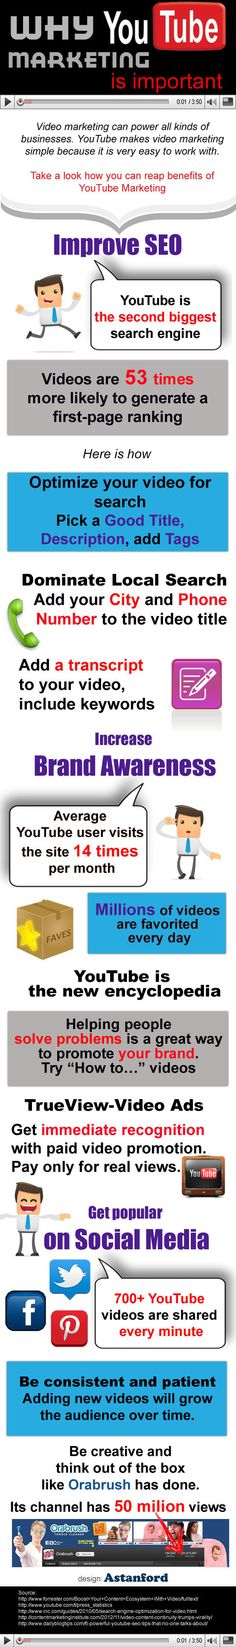 Why YouTube Marketing is Important [INFOGRAPHIC]